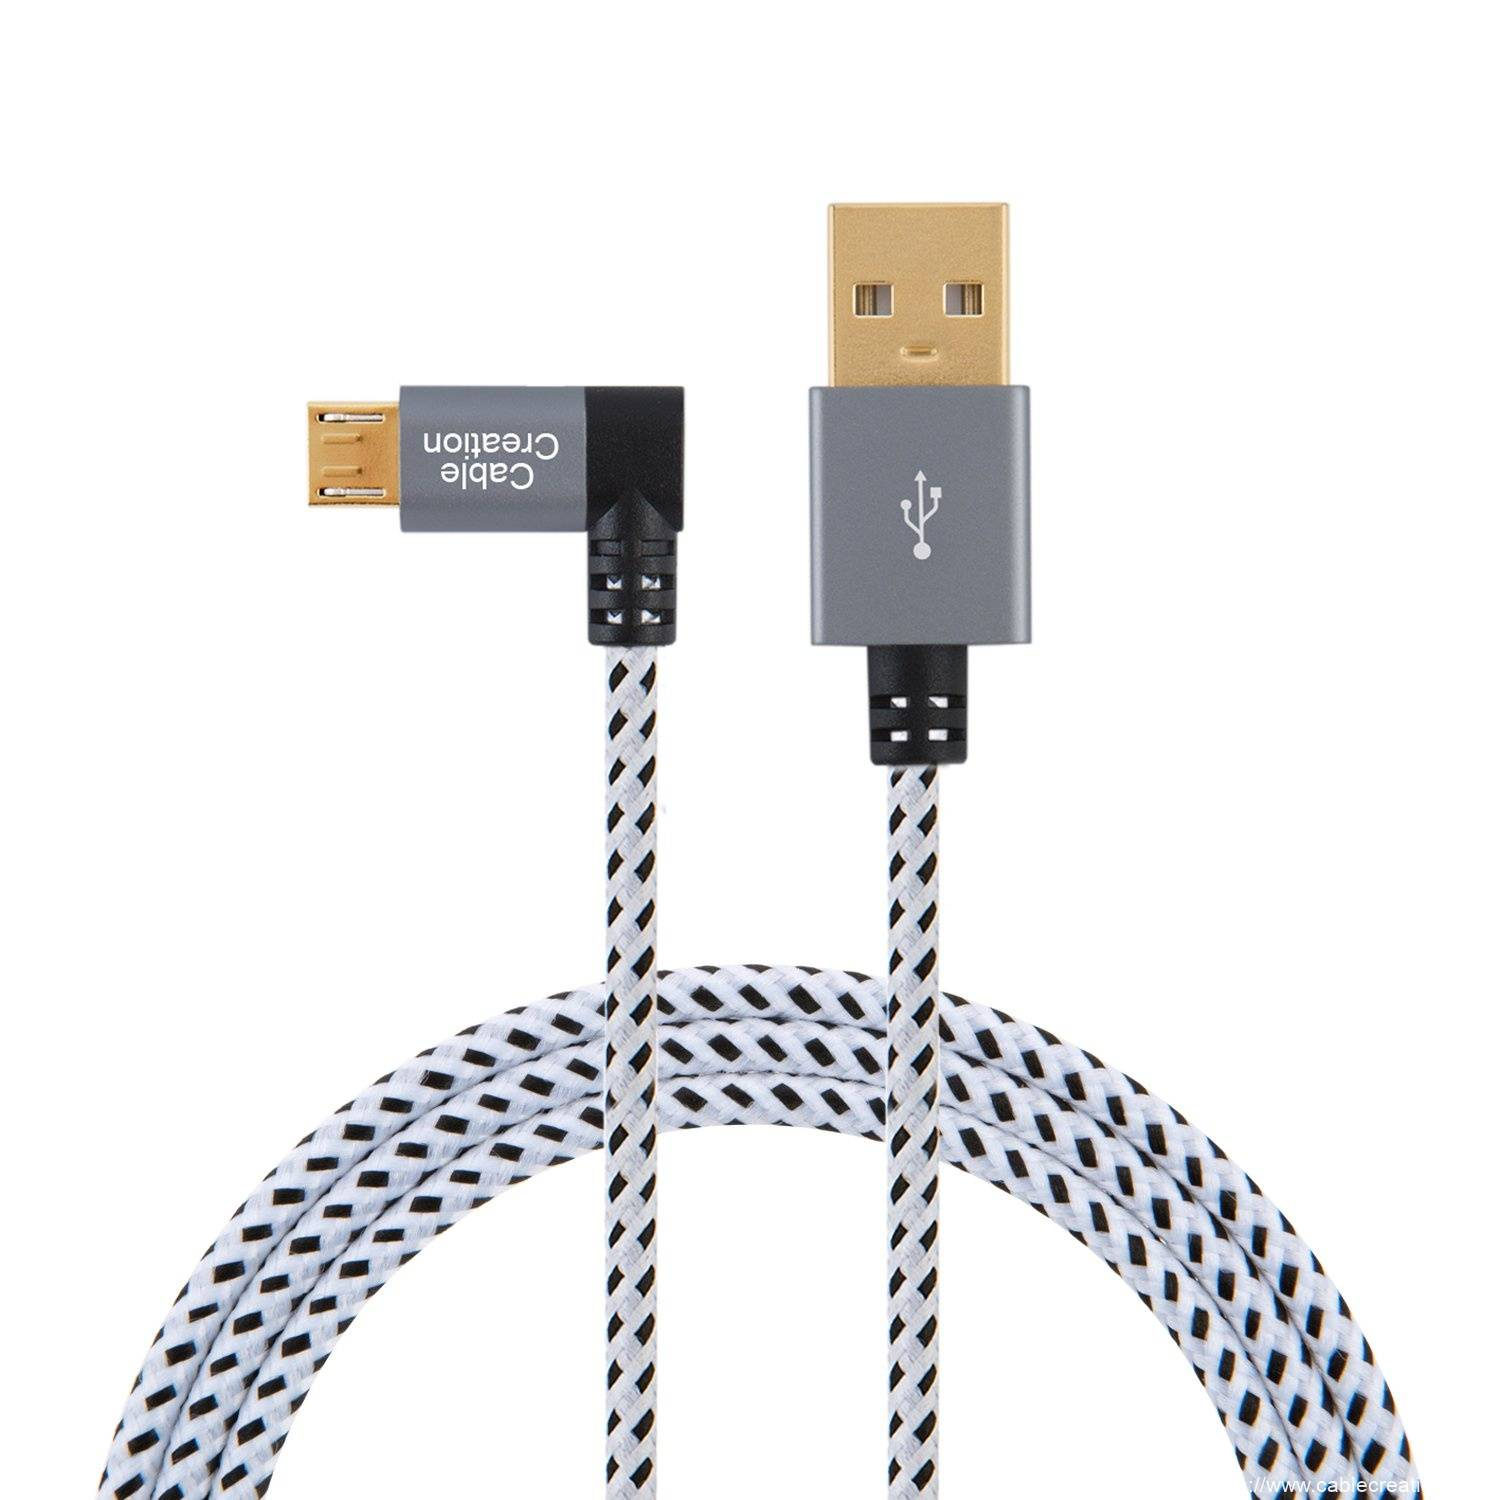 OEM Manufacturer Angle Usb Cable - Left Angle USB 2.0 Cable 3.2Feet/1Meter, #CC0542 – CableCreation